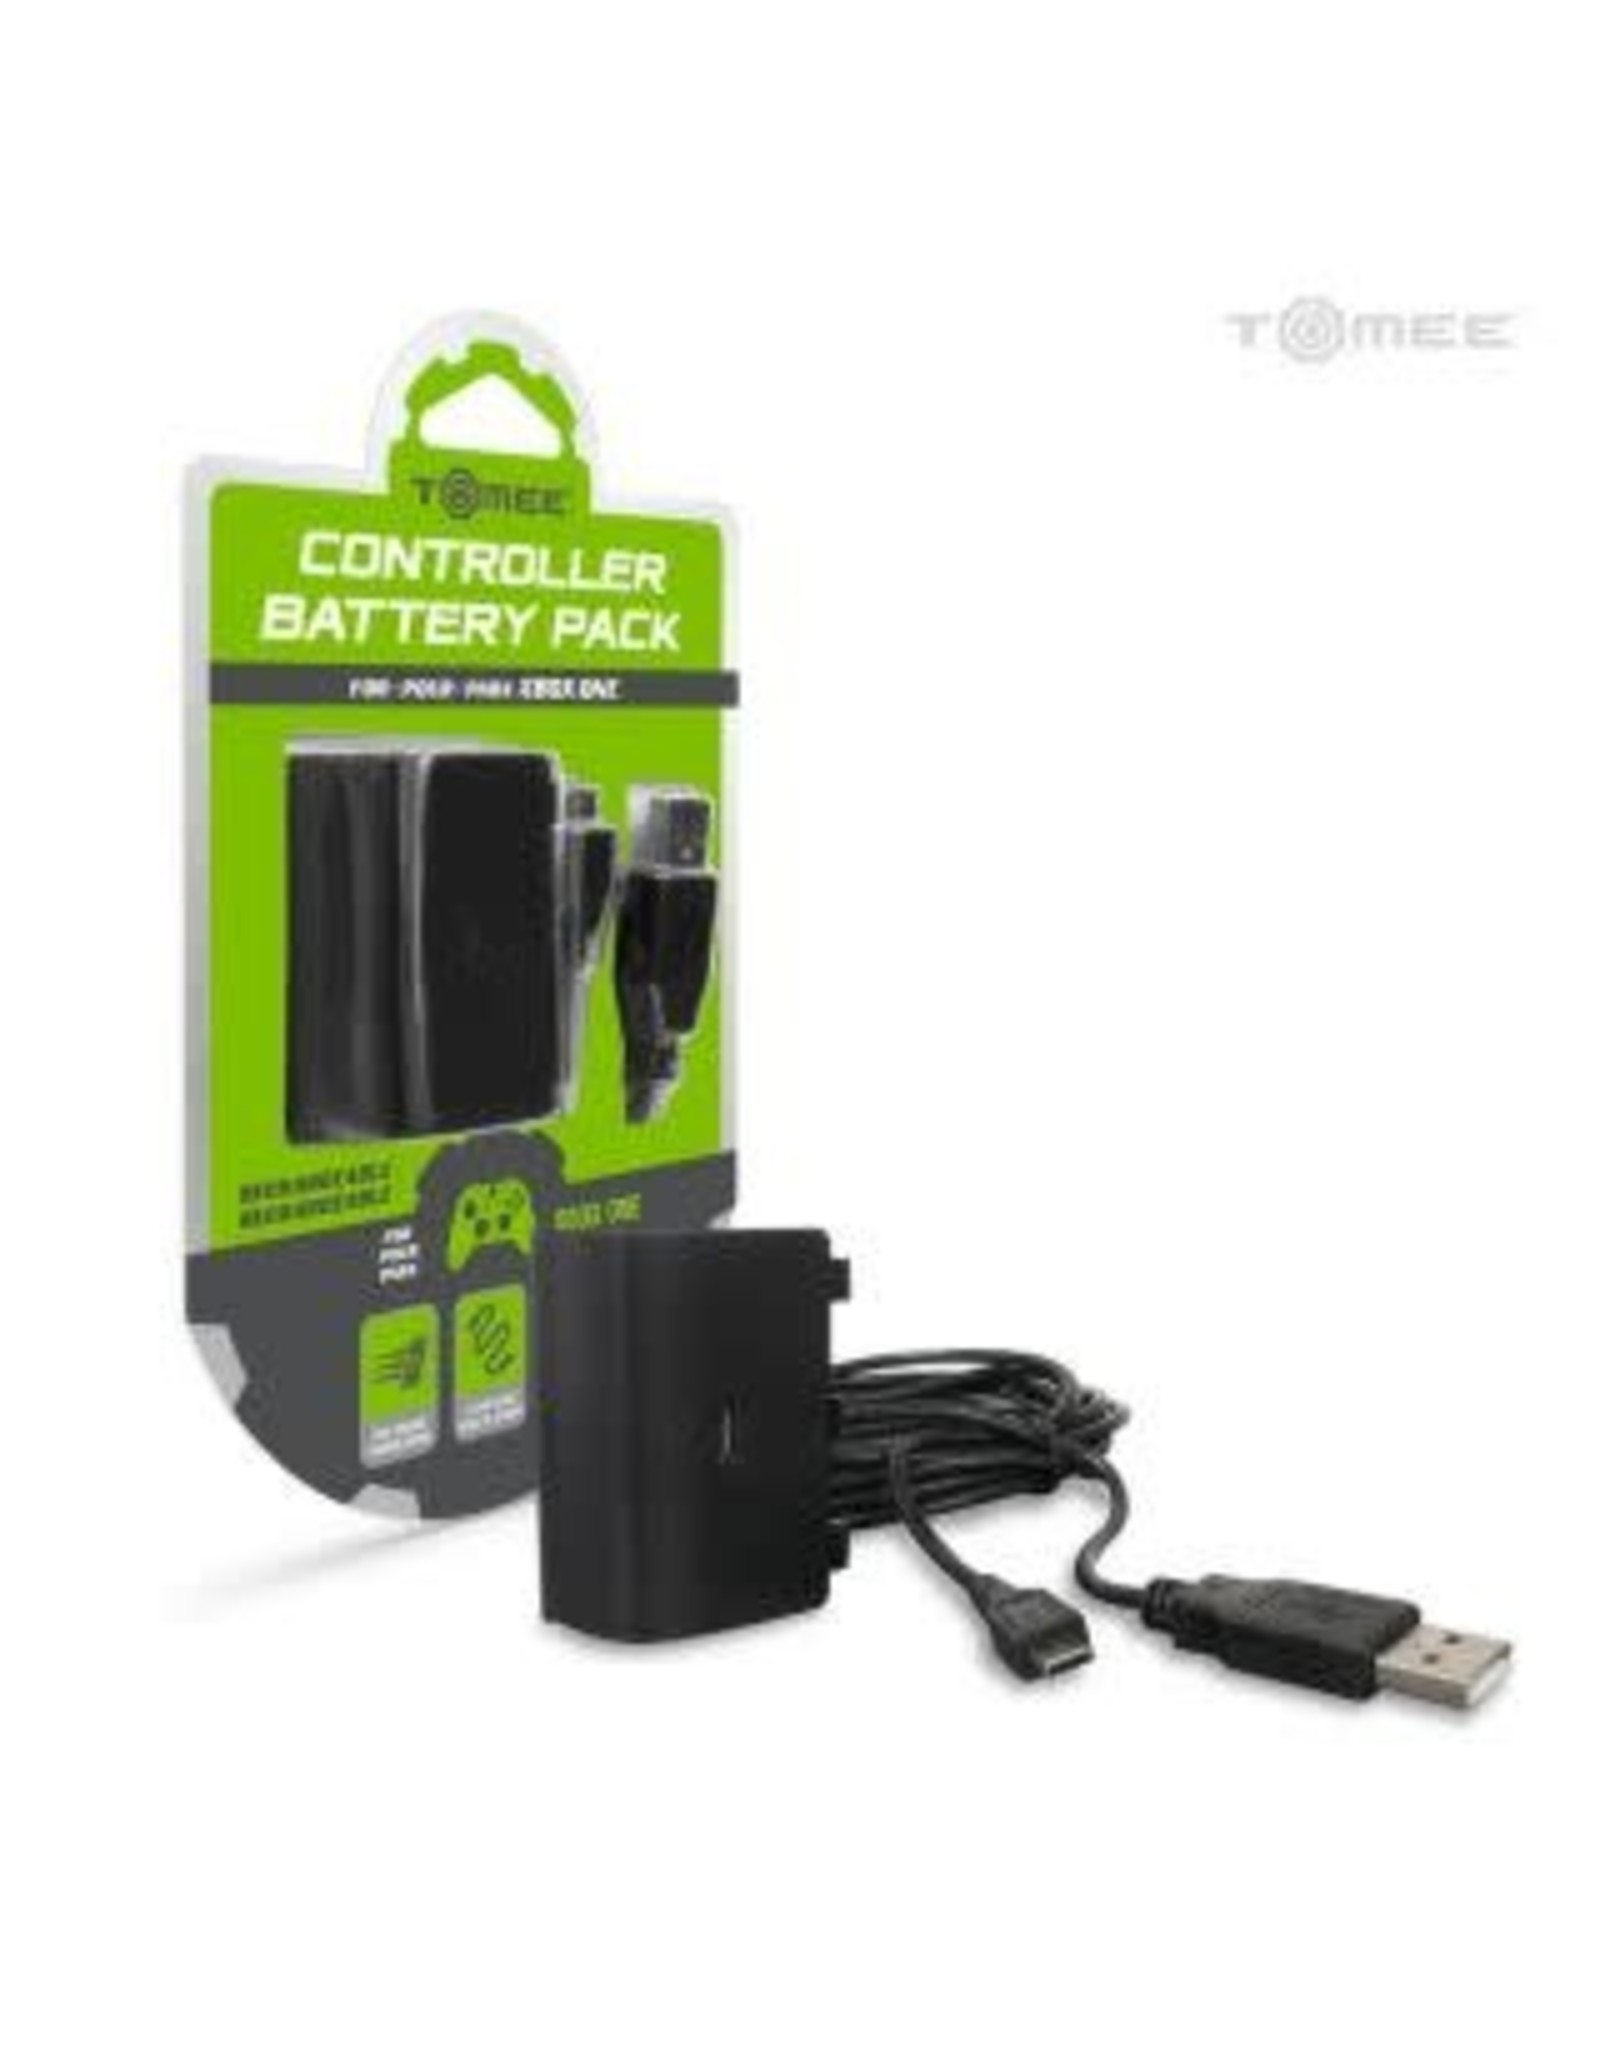 Controller Battery Pack and Charge Cable for Xbox One